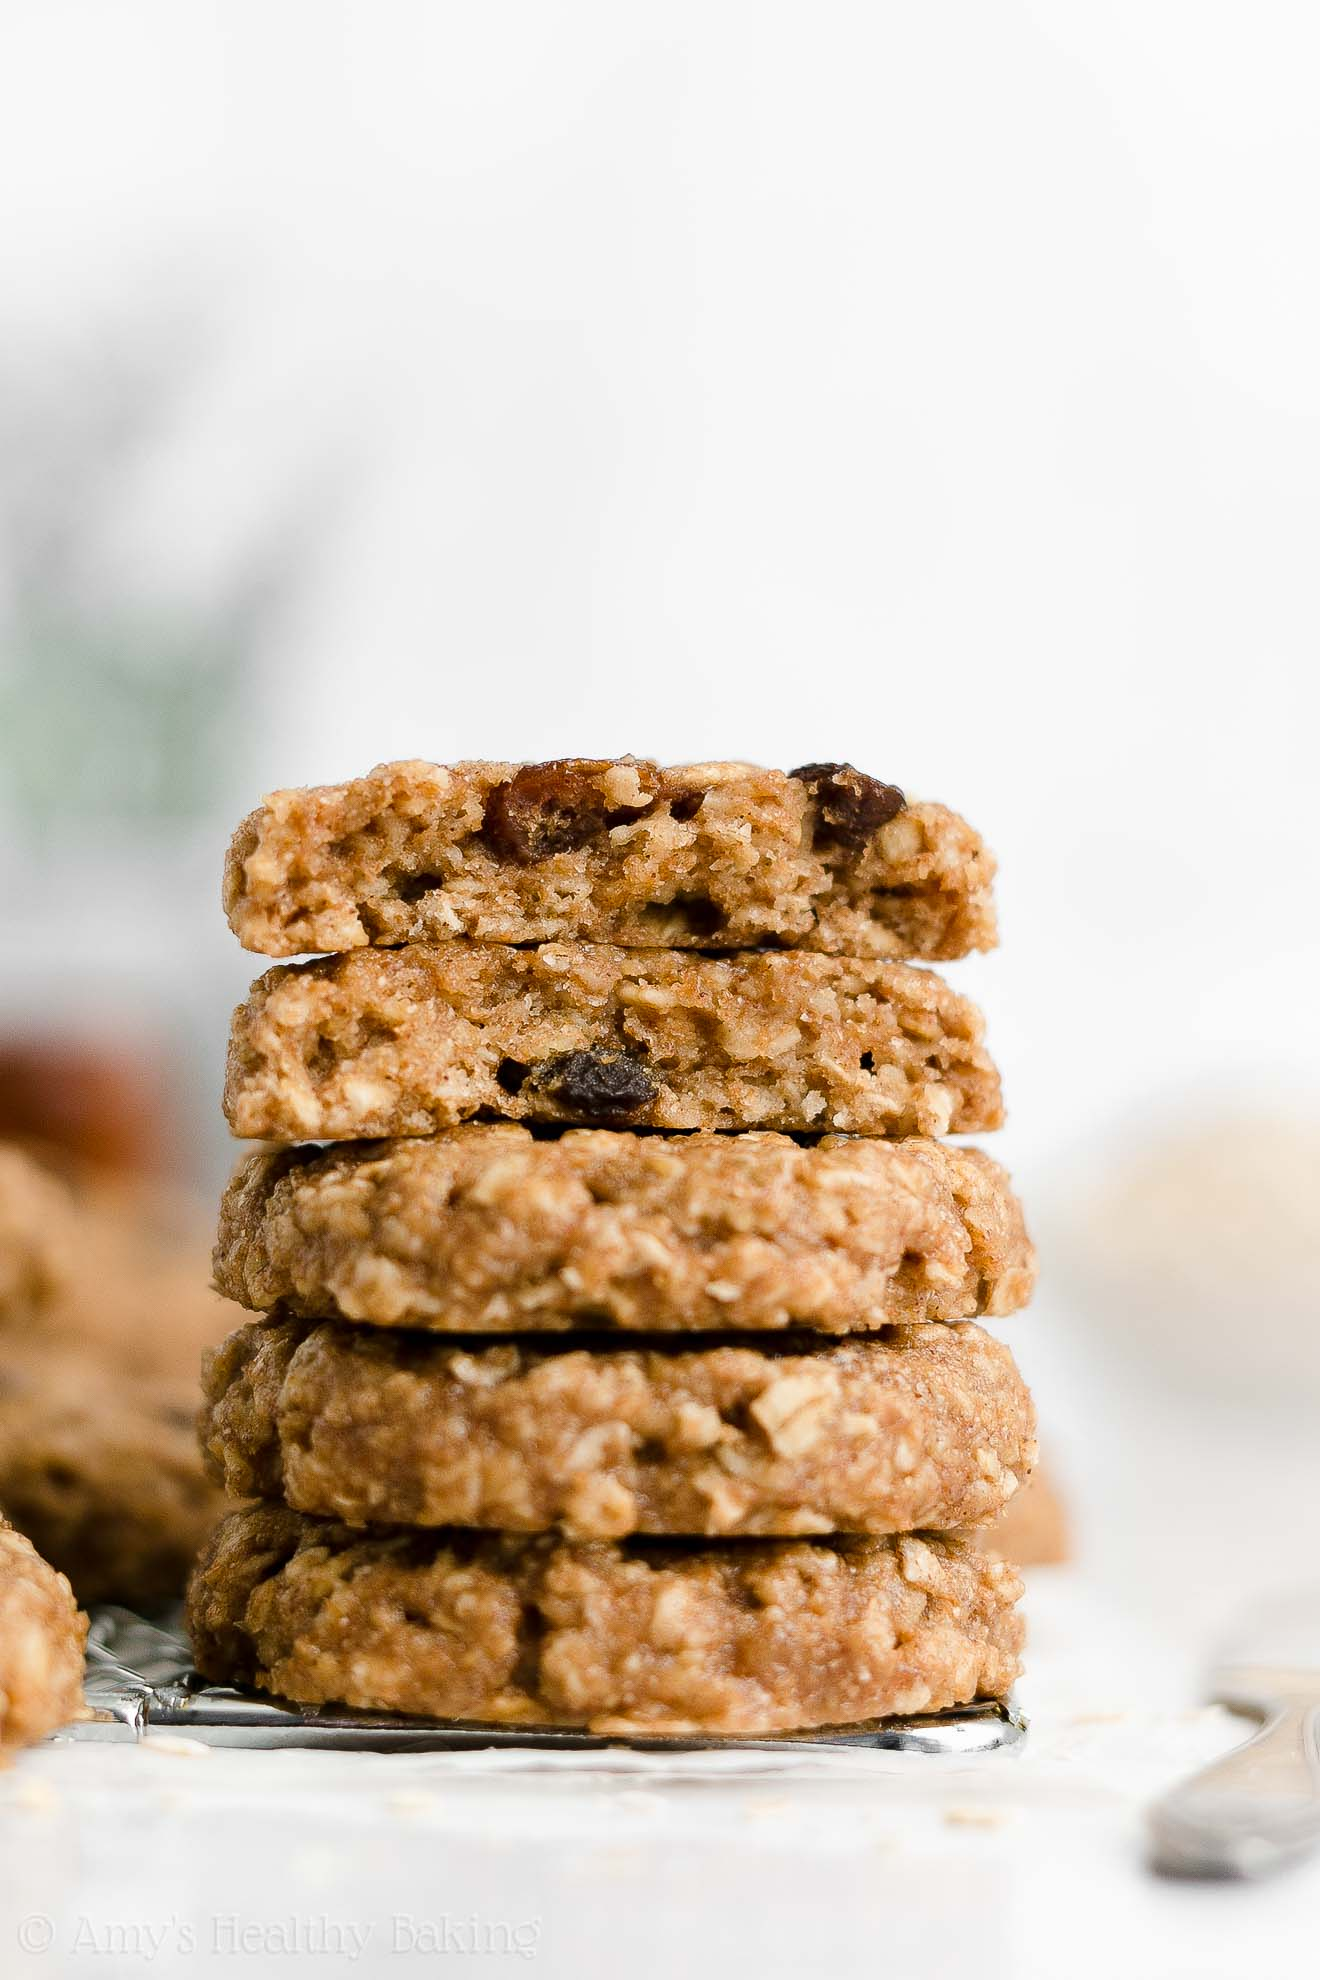 Healthy Low Calorie Vegan Gluten Free Flourless Oatmeal Raisin Cookies No Sugar